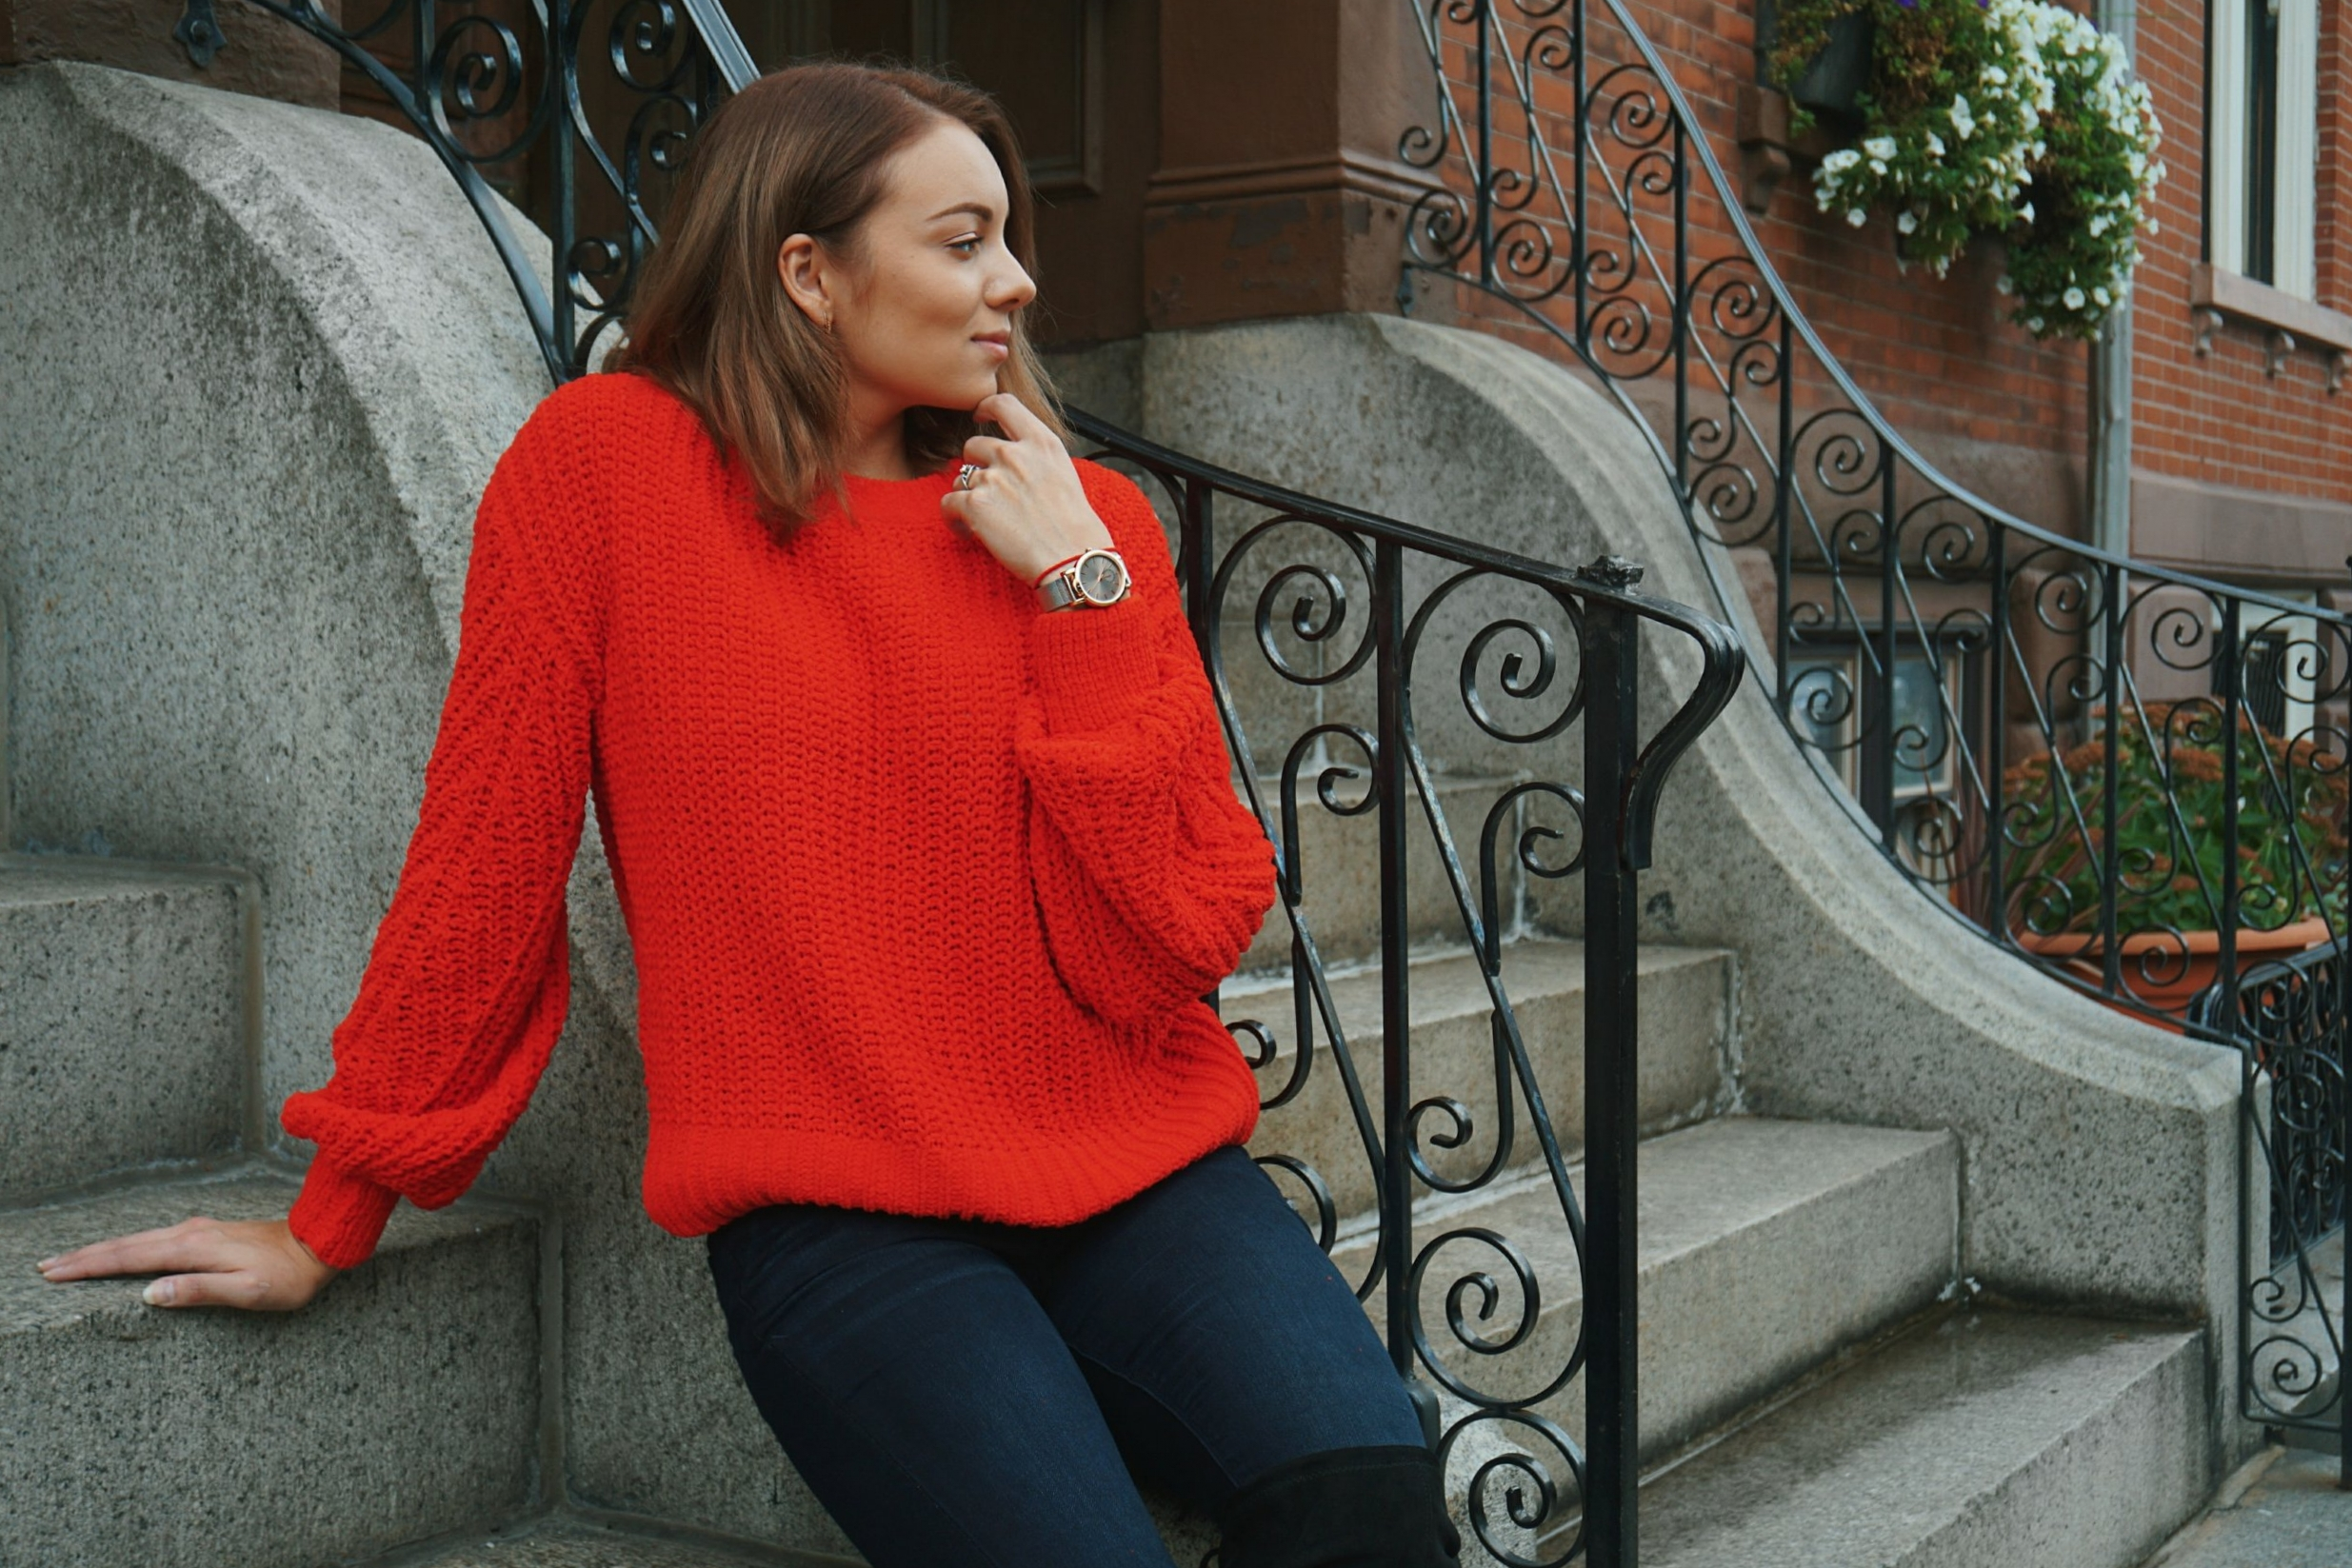 A girl sitting on stone steps, wearing a red oversized sweater and jeans.